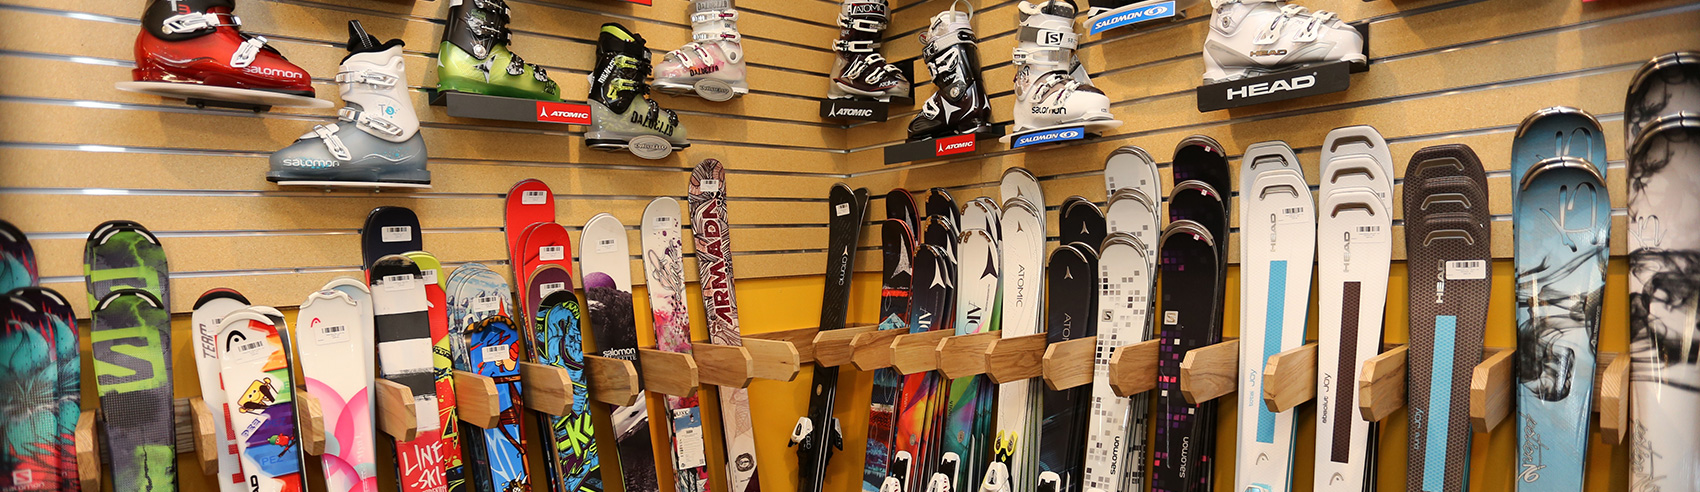 ski-and-snowboard-shop-ski-rack